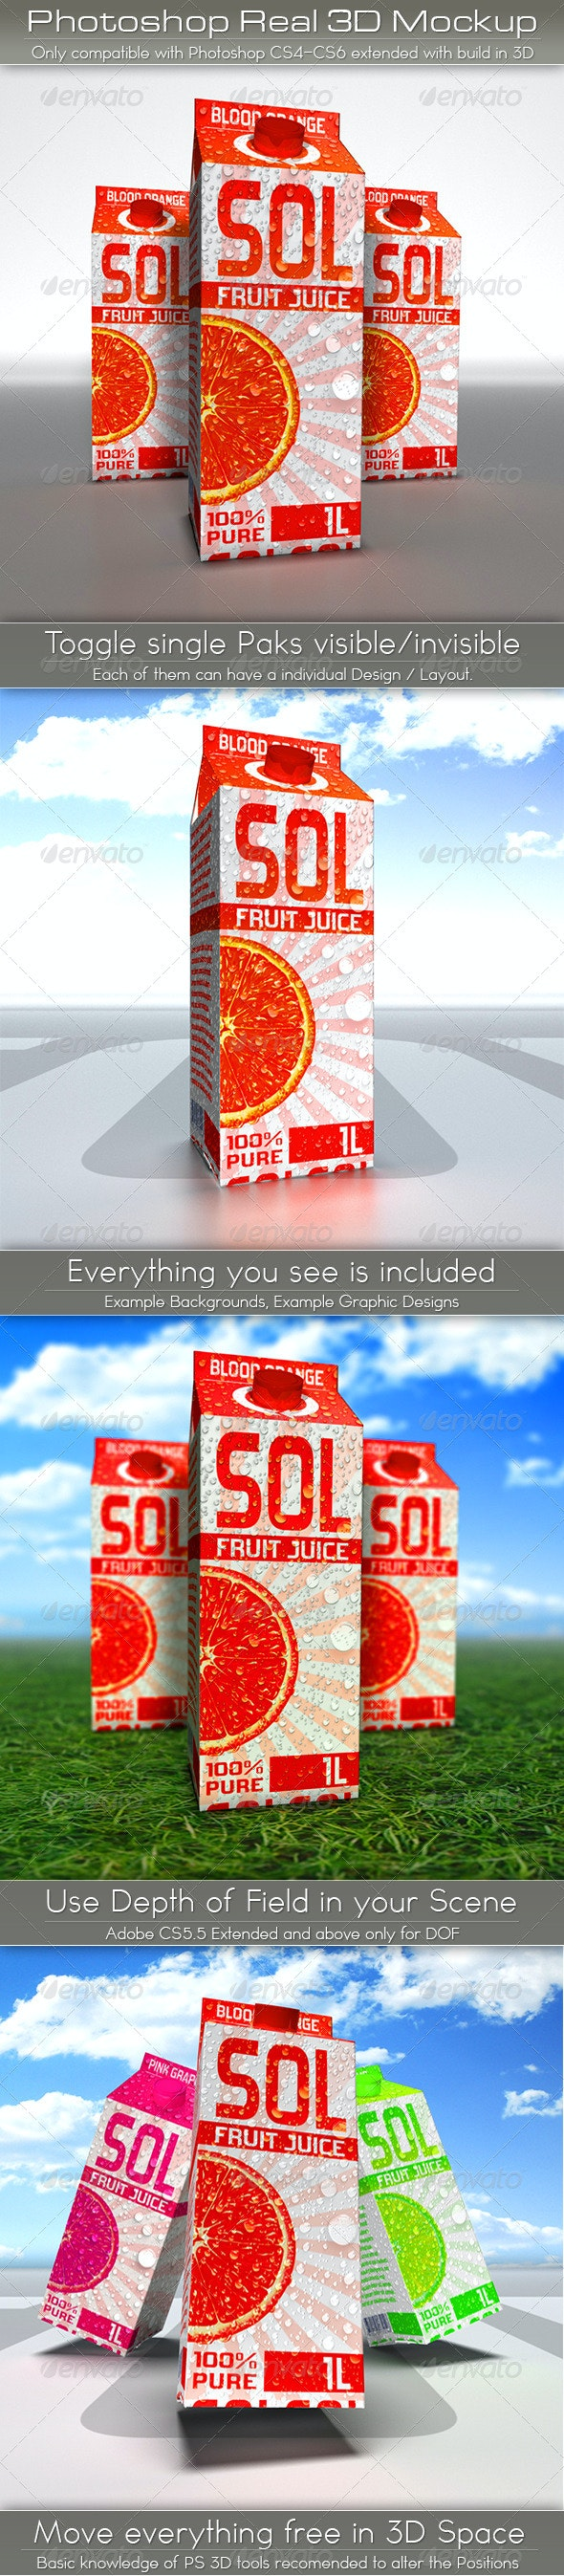 Large Juice or Milk Carton Pack Mockup   3D Photoshop - Food and Drink Packaging